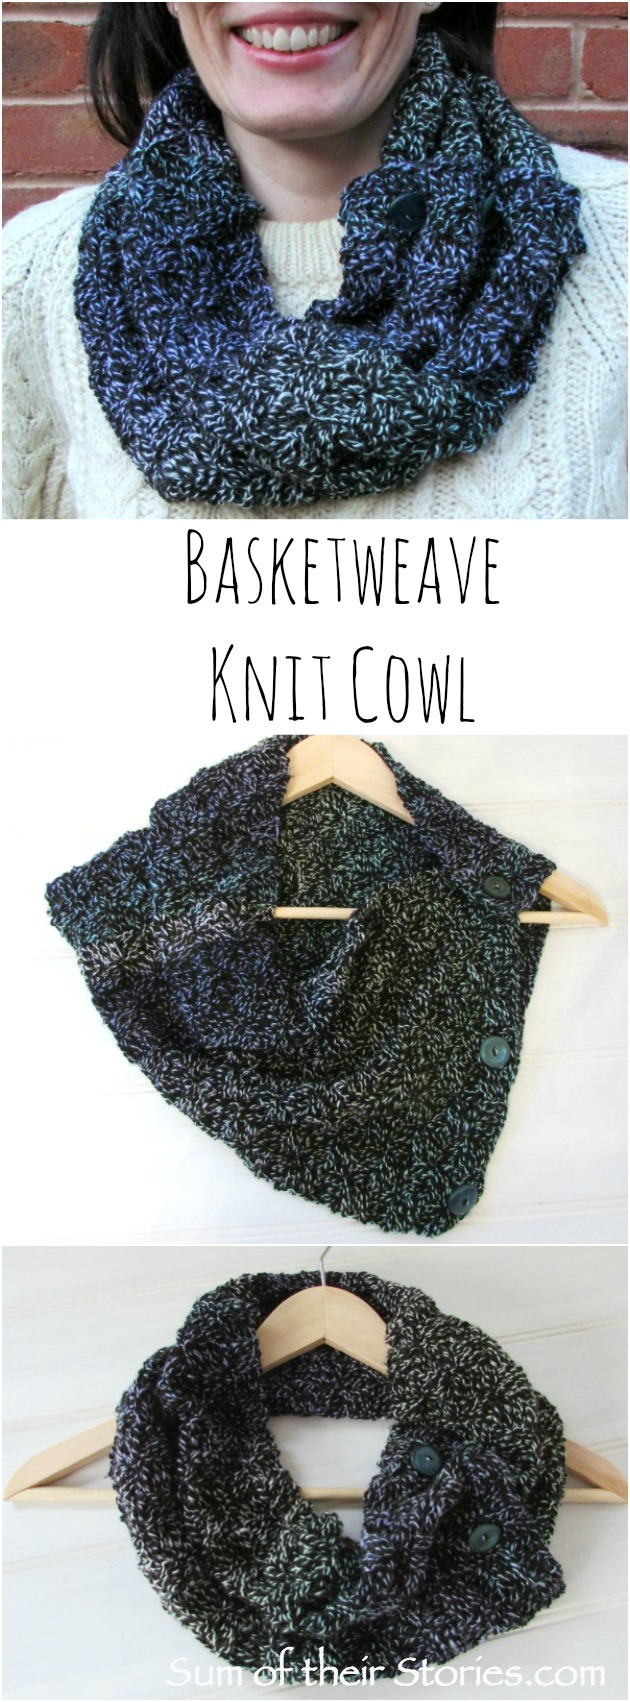 Basketweave Knit Cowl — Sum of their Stories